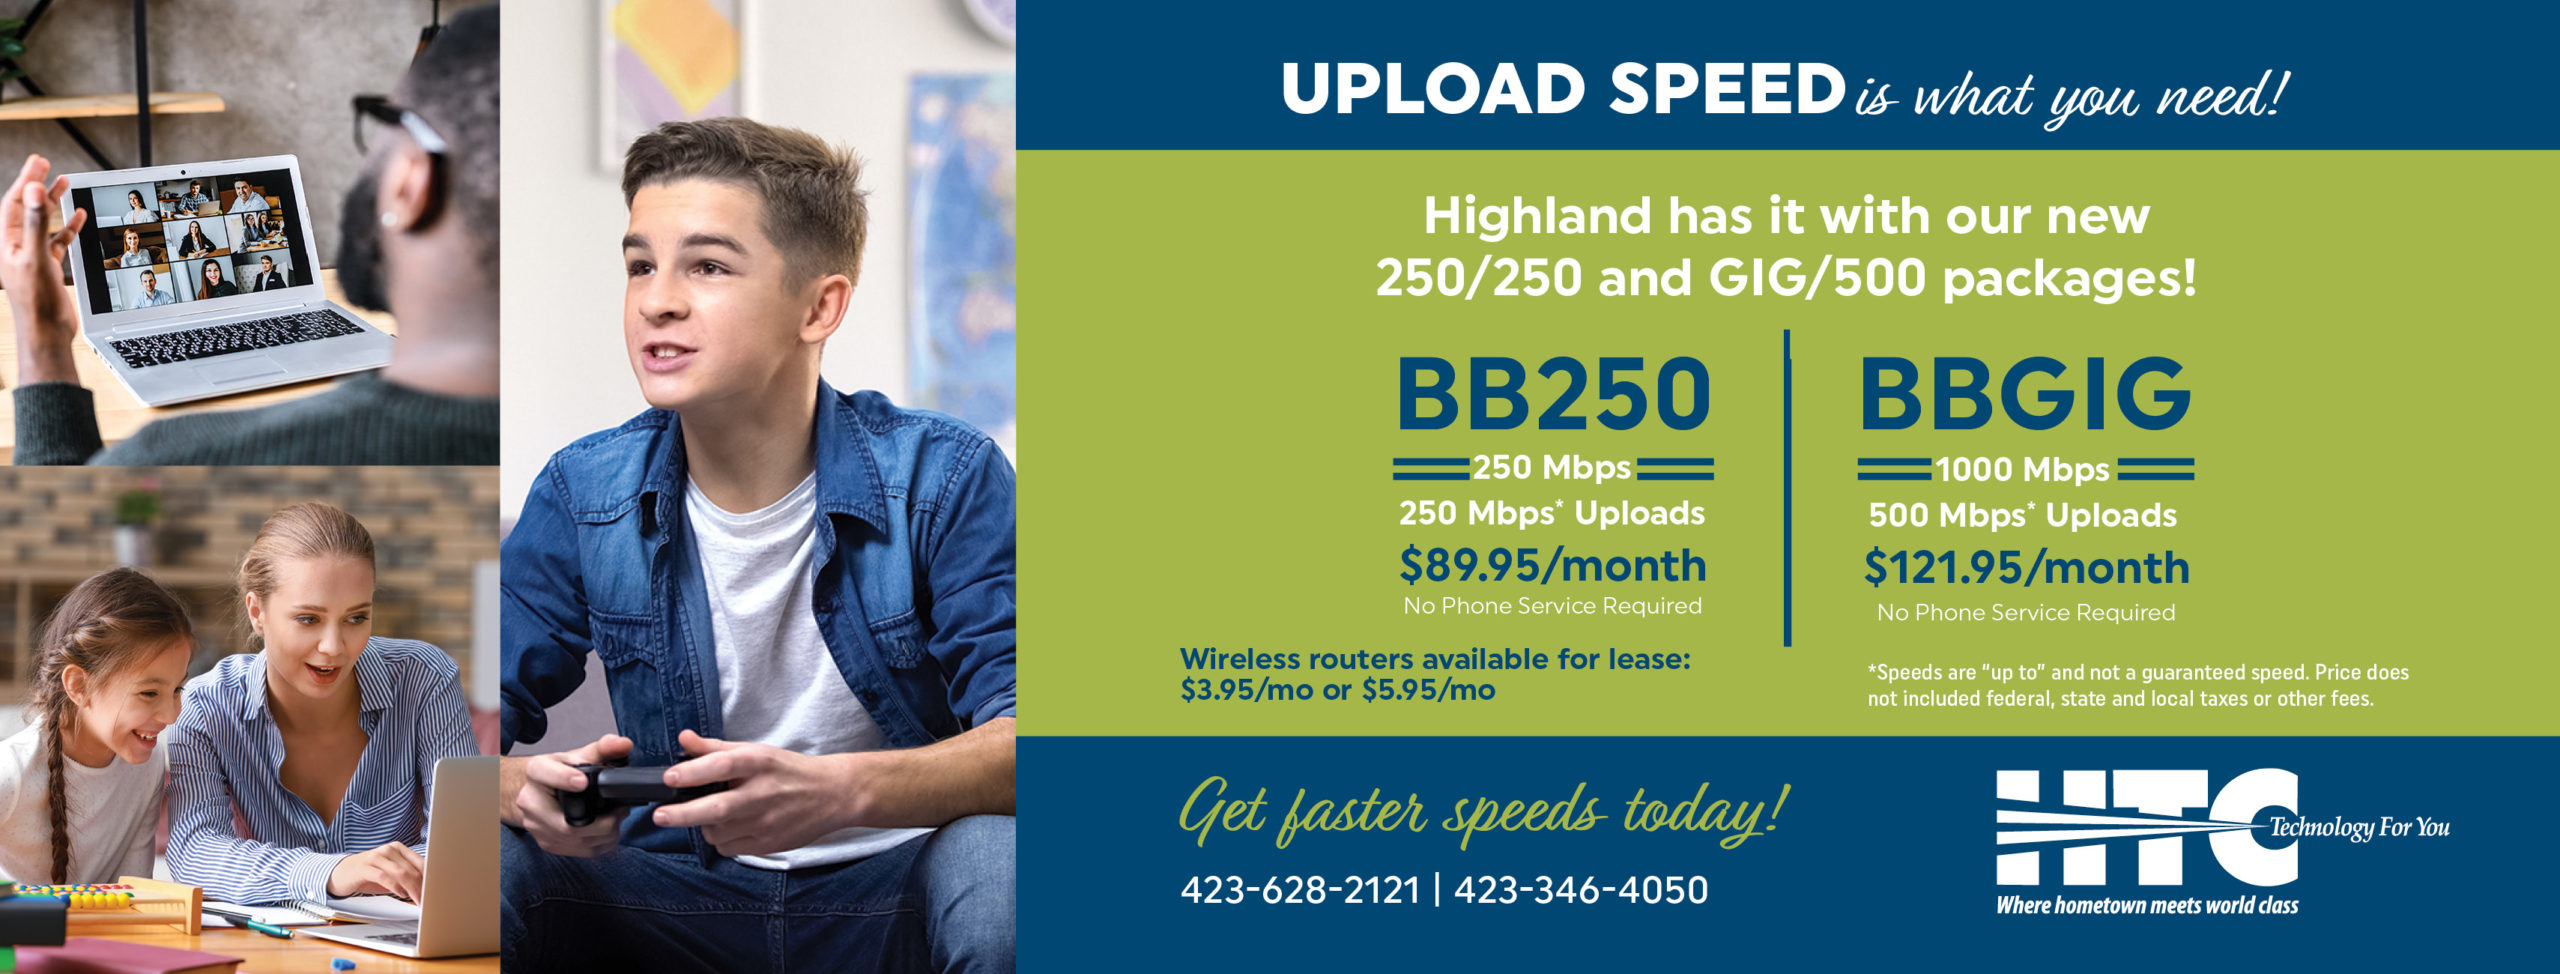 """Upload speed is what you need! Highland has it with our new 250/250 and GIG/500 packages! BB250 250 Mpbs. 250 Mbps* uploads. $89.95 per month. No Phone Service Required. BBGIG 1000 Mbps. 500 Mbps* uploads. $121.95 per month. No Phone Service Required. Wireless routers available for lease: $3.95/mo. *Speeds are """"up to"""" and not a guaranteed speed. Price does not included federal, state and local taxes or other fees. Get faster speeds today! 423-628-2121. 423-346-4050. HTC. Technology for you. Where hometown meets world class."""